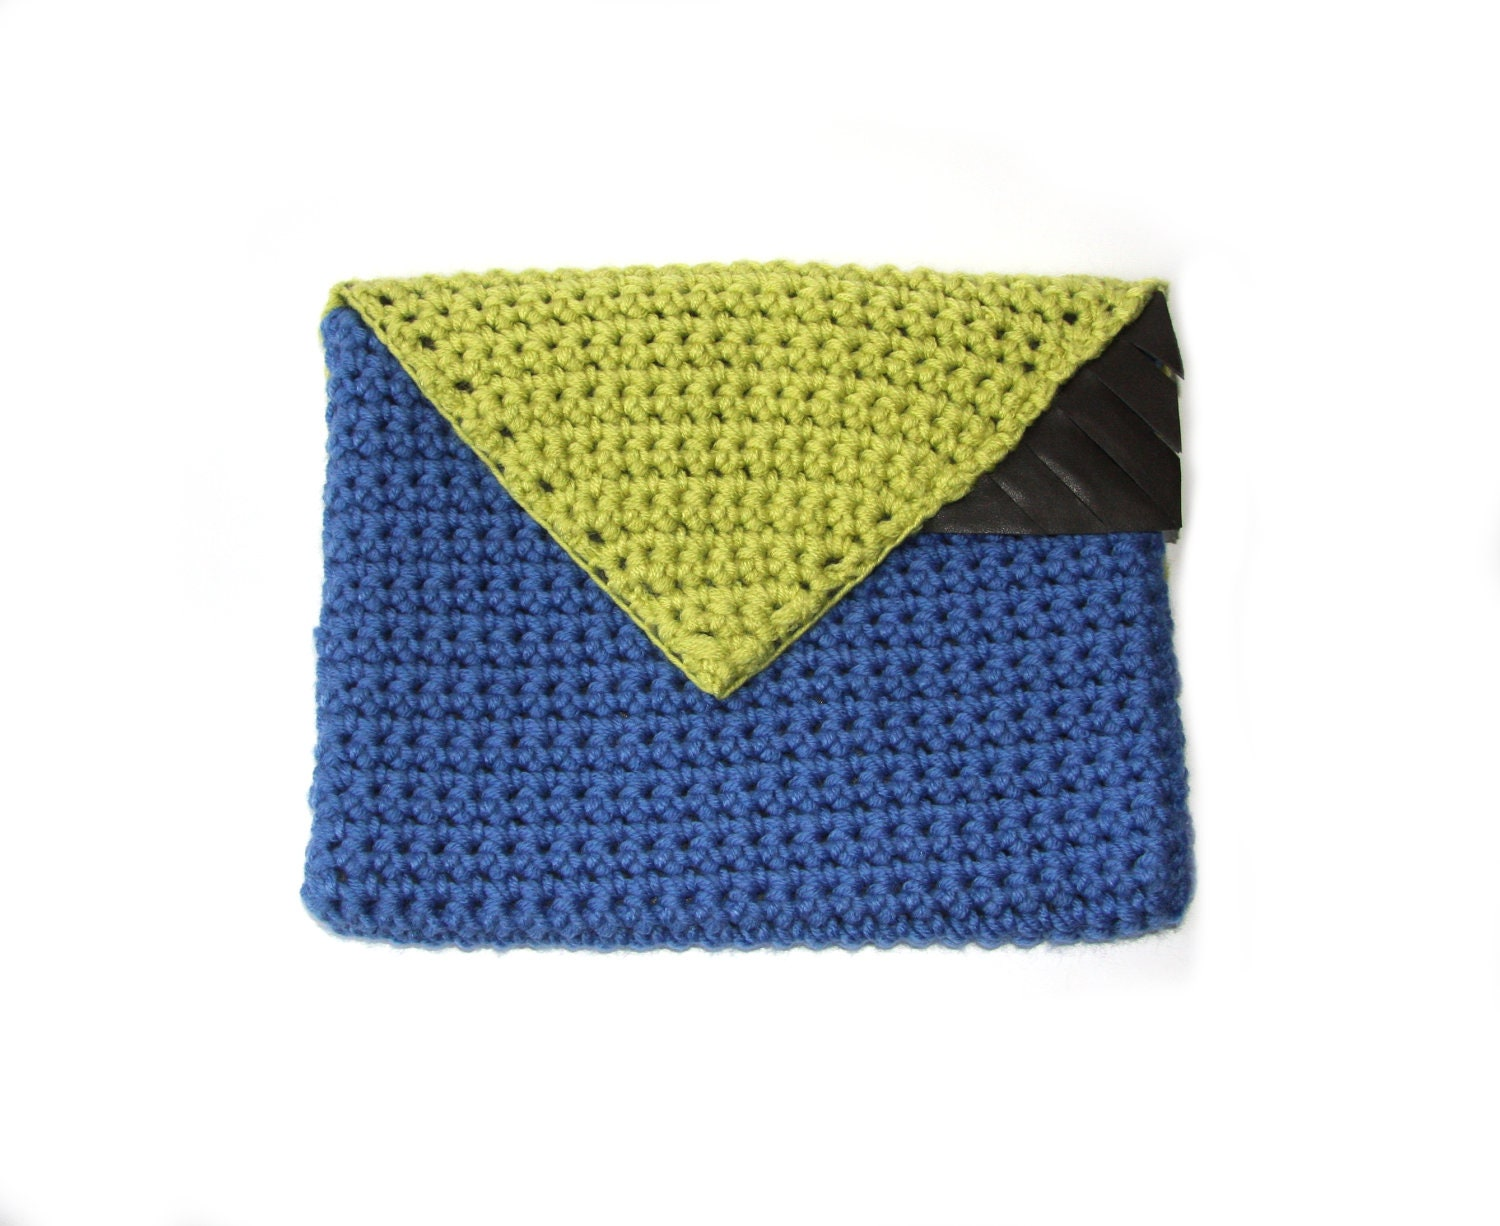 Colorblock Statement Winter Clutch - chartreuse, blue, brown leather - ready to ship - ElevenBoutique